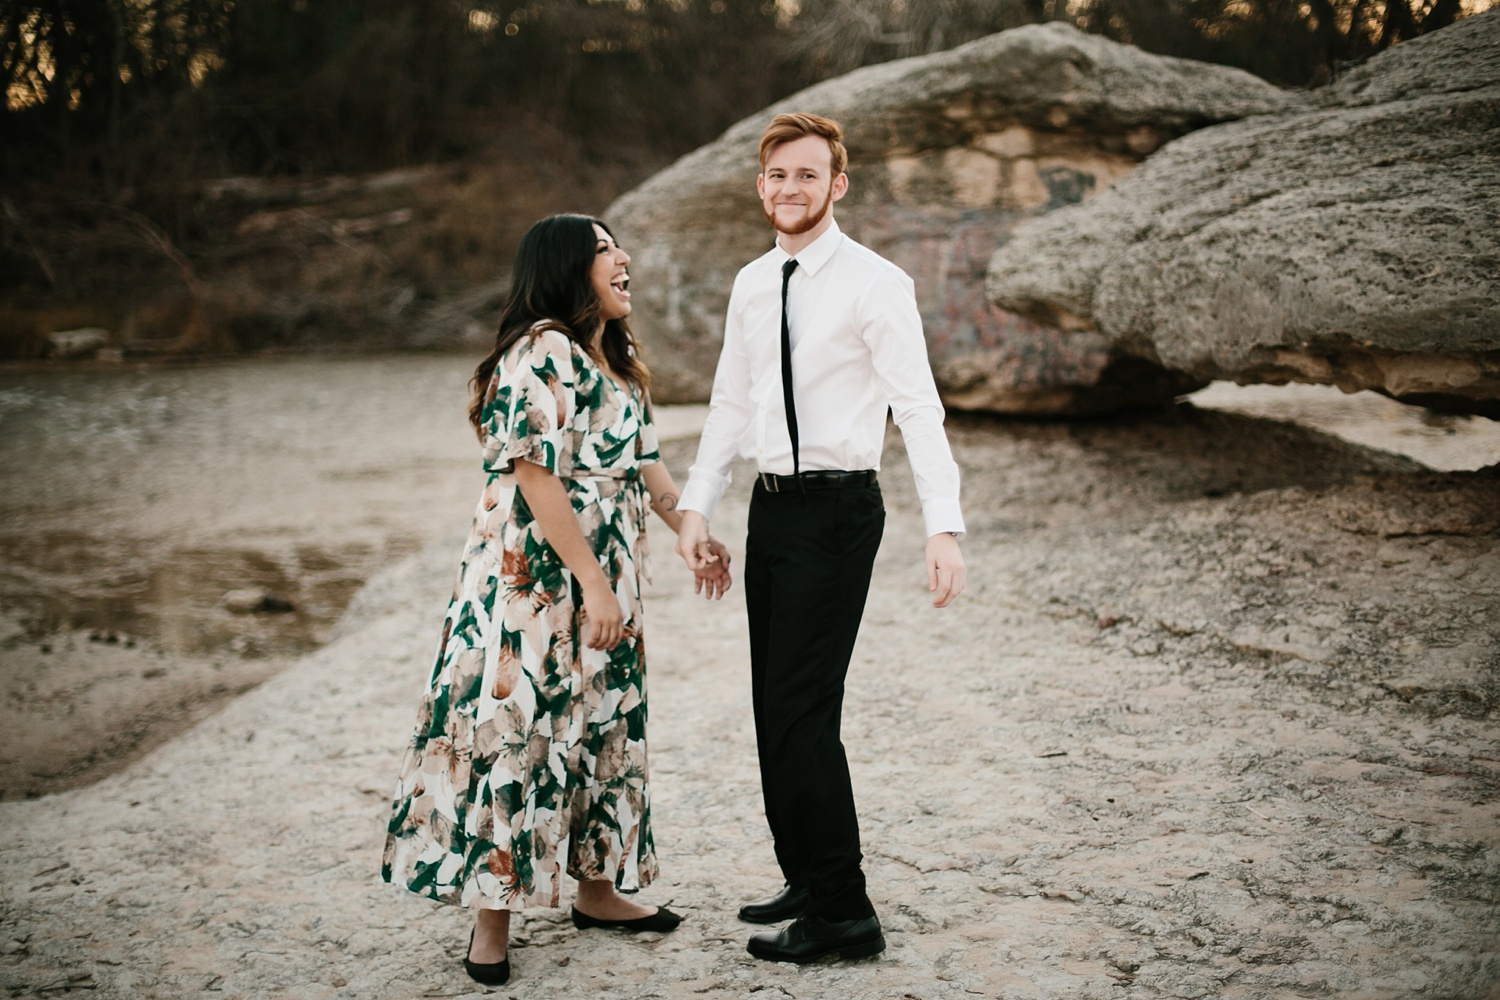 Grant + Lysette - floral dress engagement session by North Texas Wedding Photographer Rachel Meagan Photography090